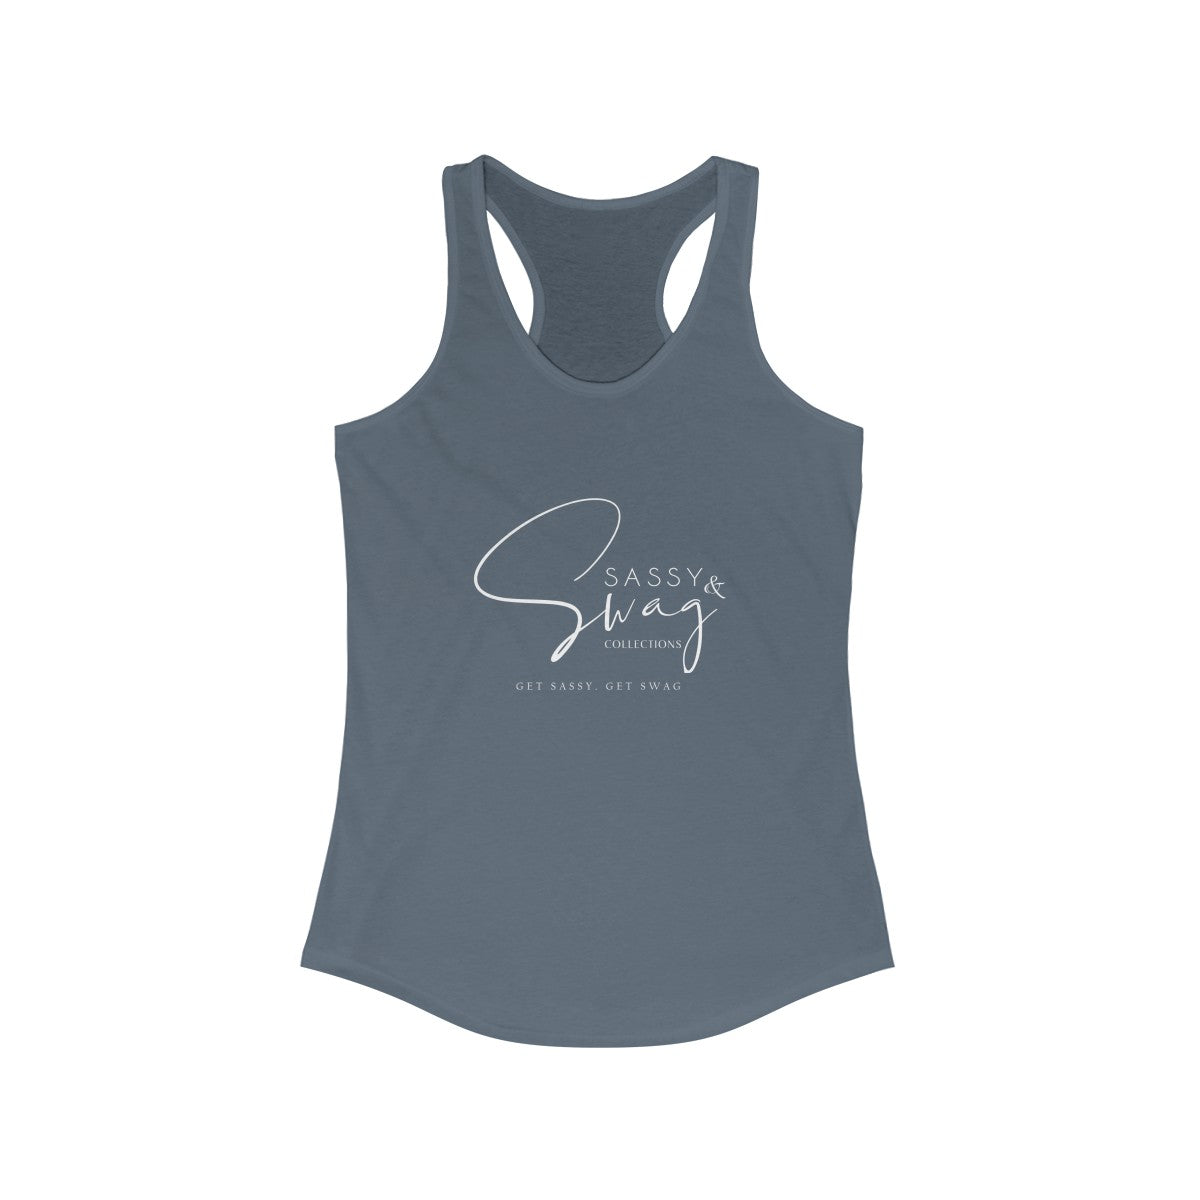 Sassy & Swag Collections Women's Ideal Racerback Tank